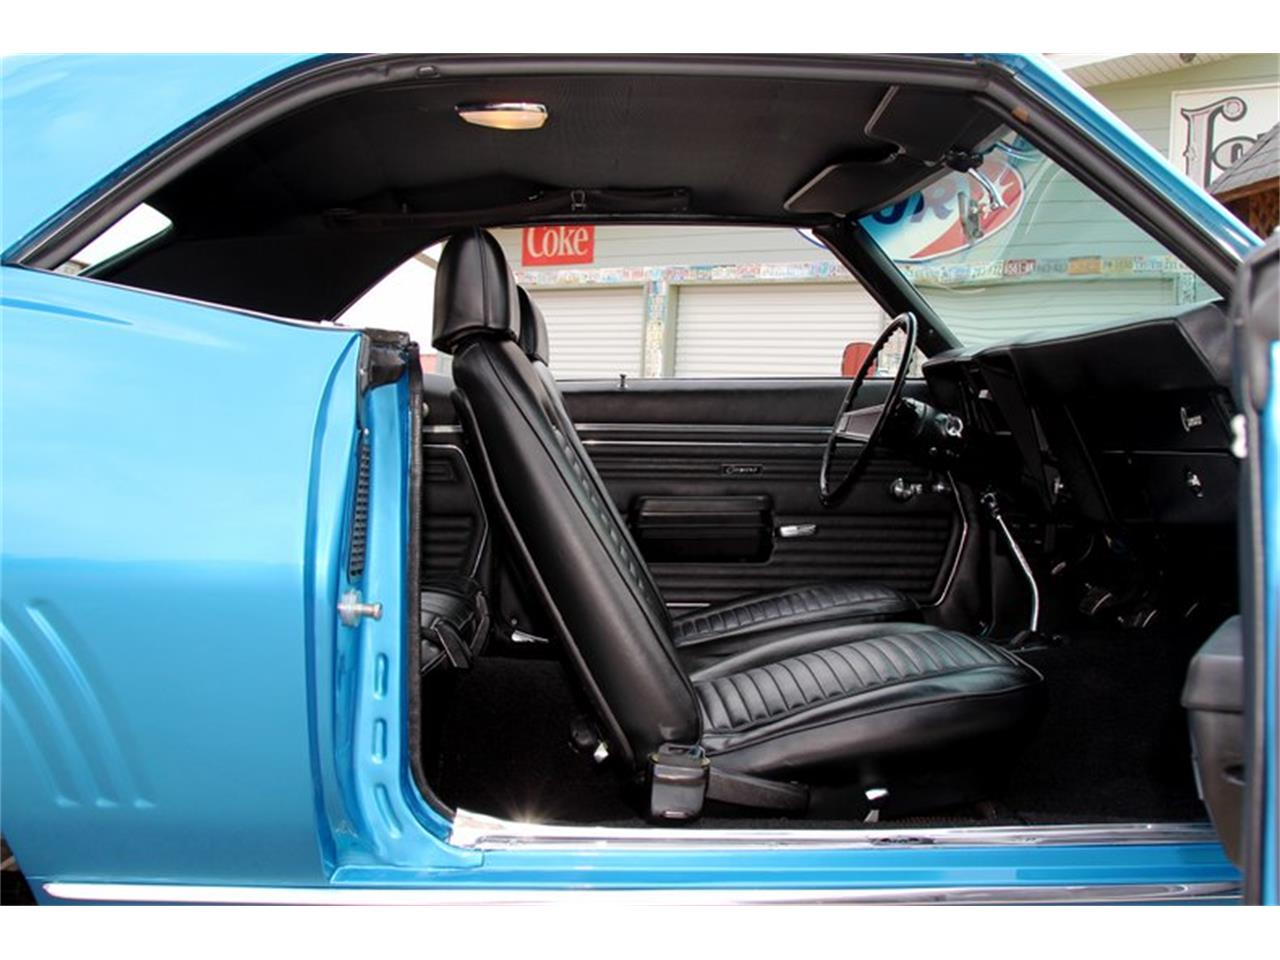 Large Picture of '69 Camaro located in Tennessee Offered by Smoky Mountain Traders - O8O3